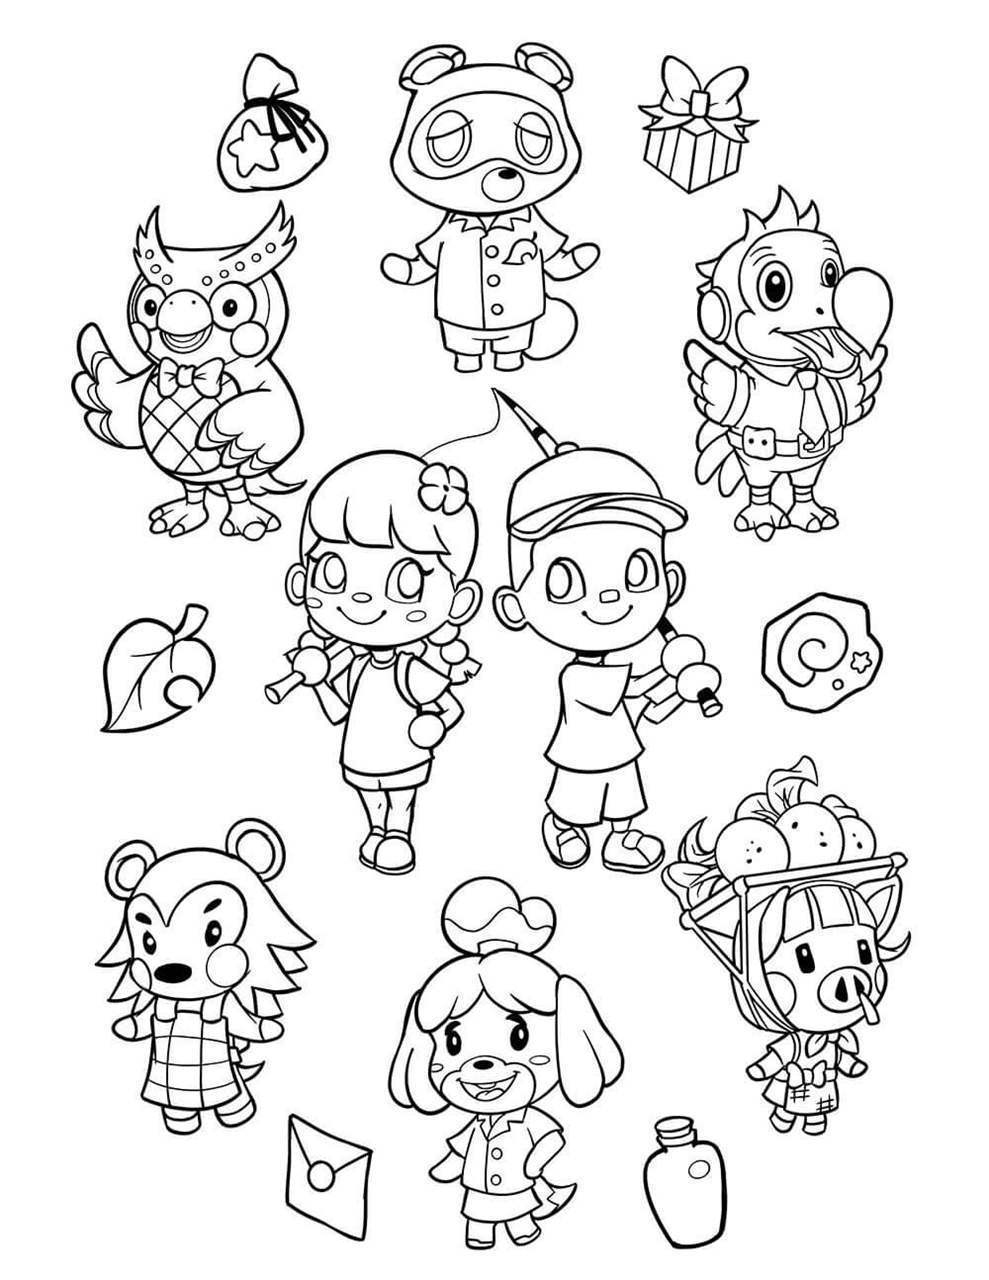 Animal Crossing Characters Coloring Page